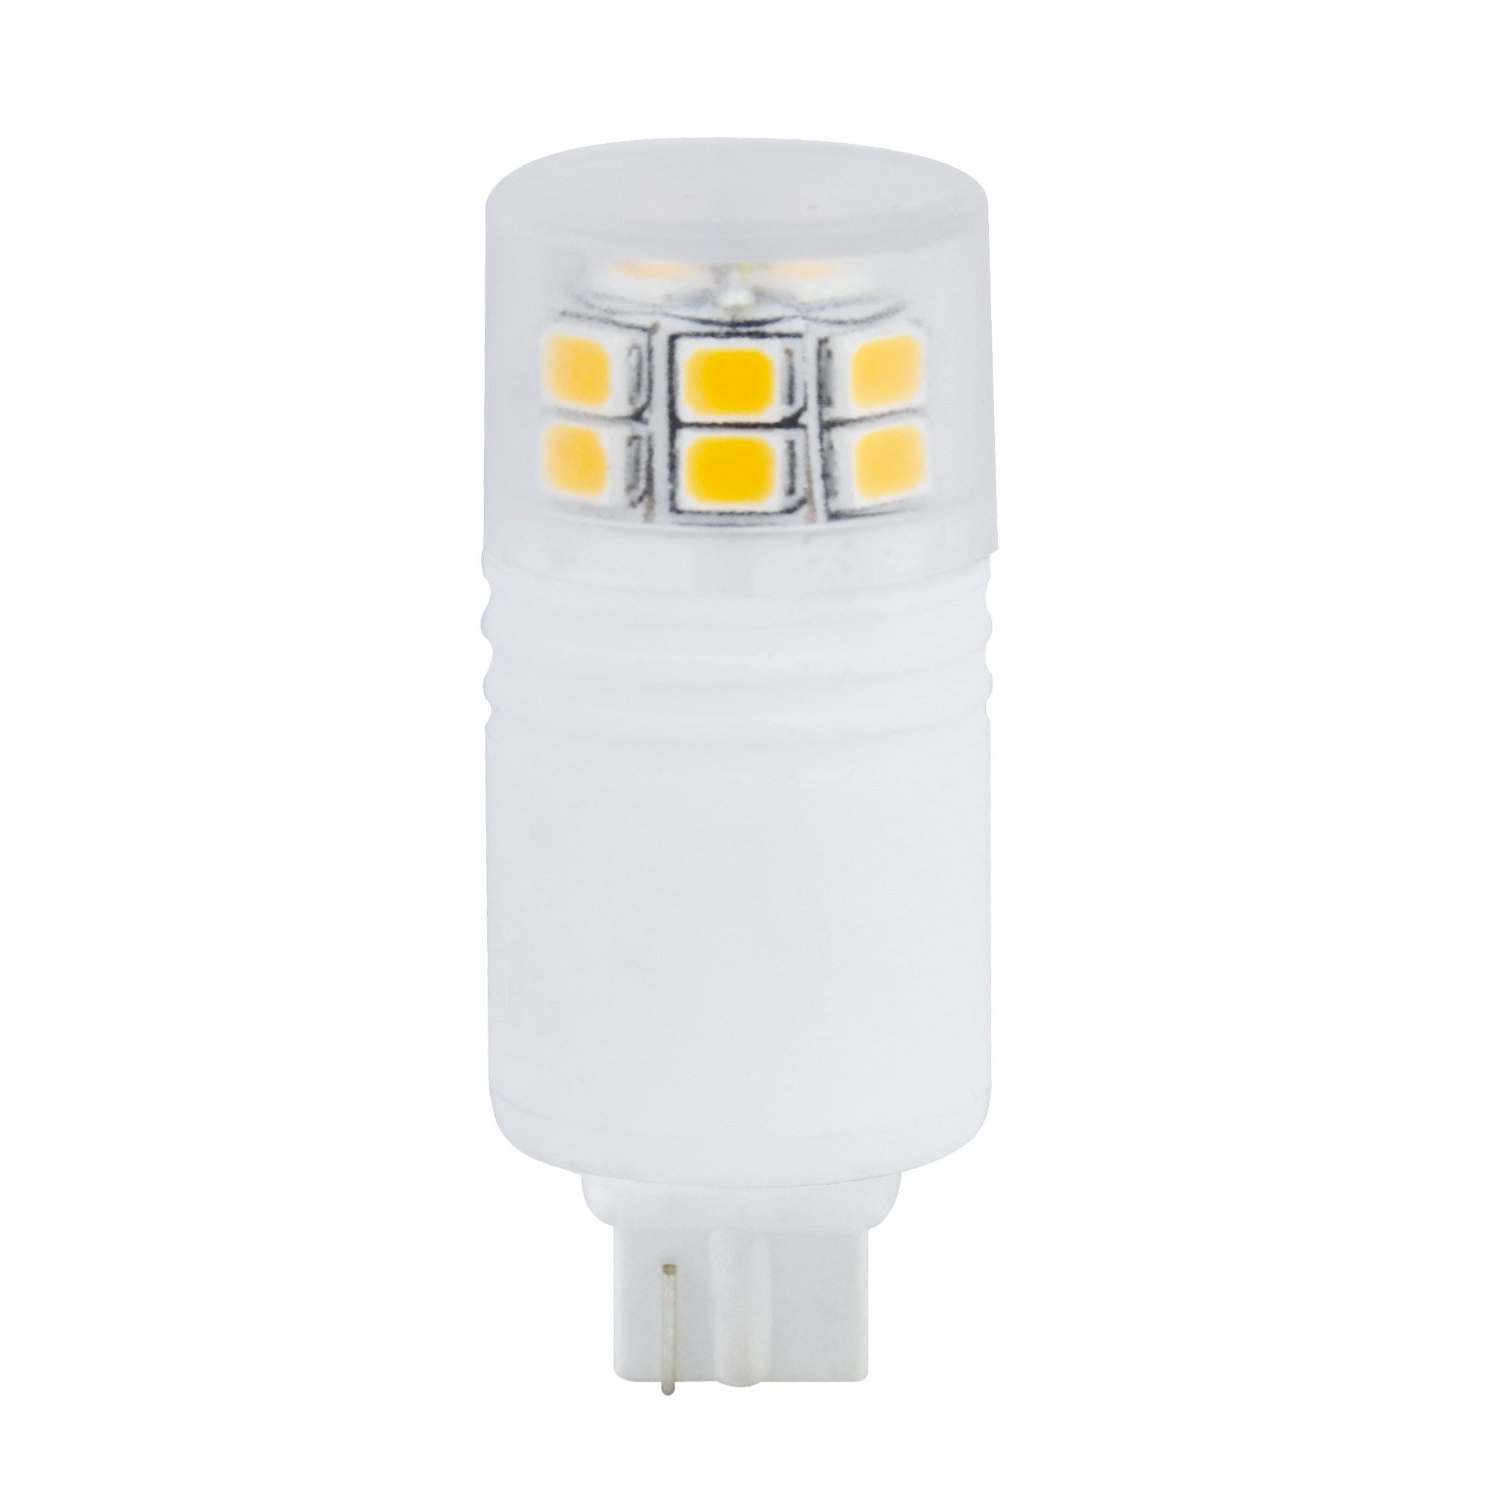 3w 18w Equivalent T5 3018 Led T5 Bulb Newhouse Lighting